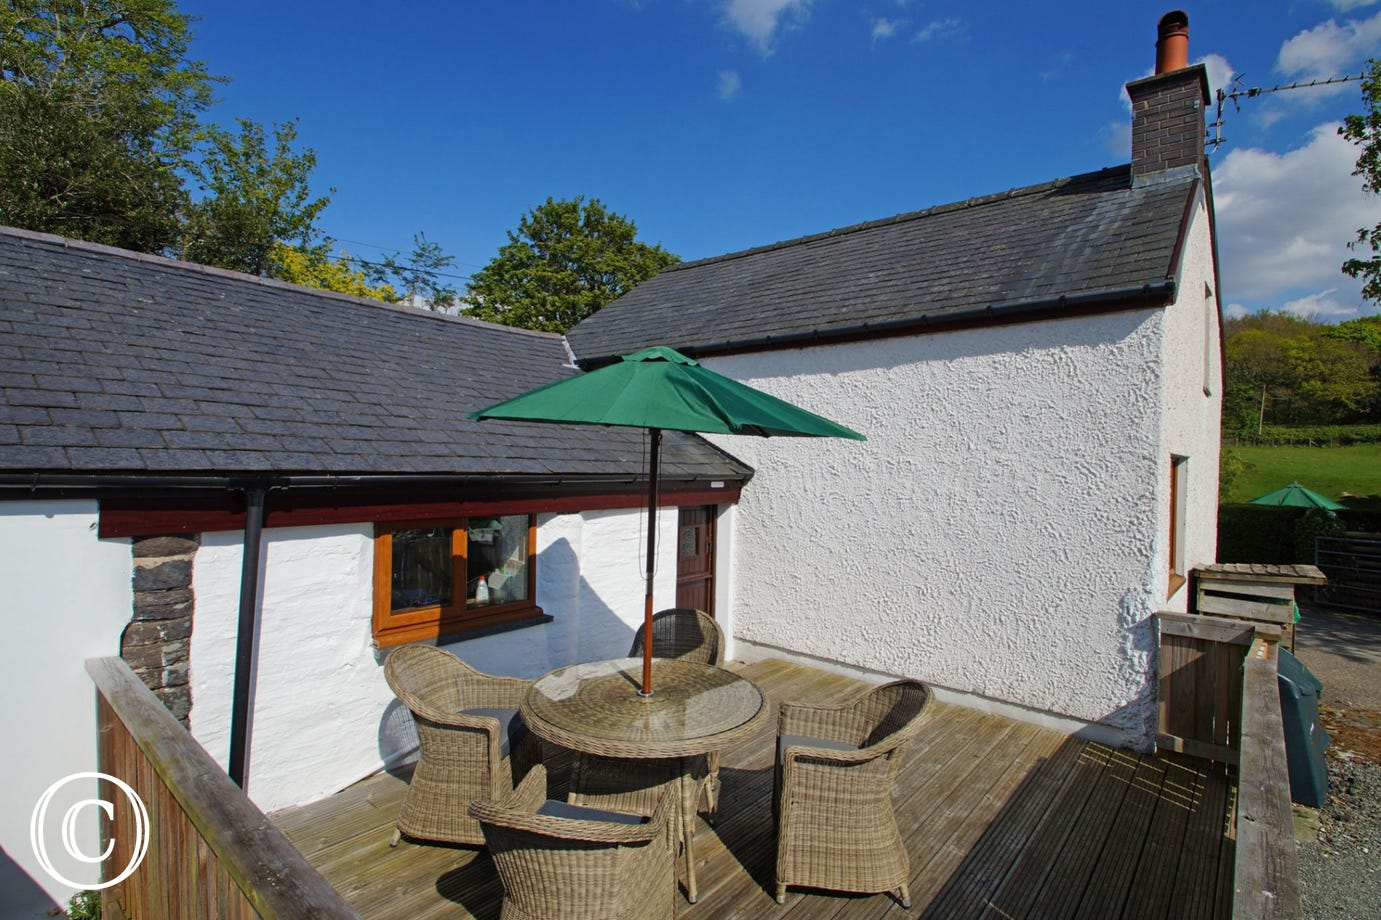 Private and enclosed patio at the rear of the cottage